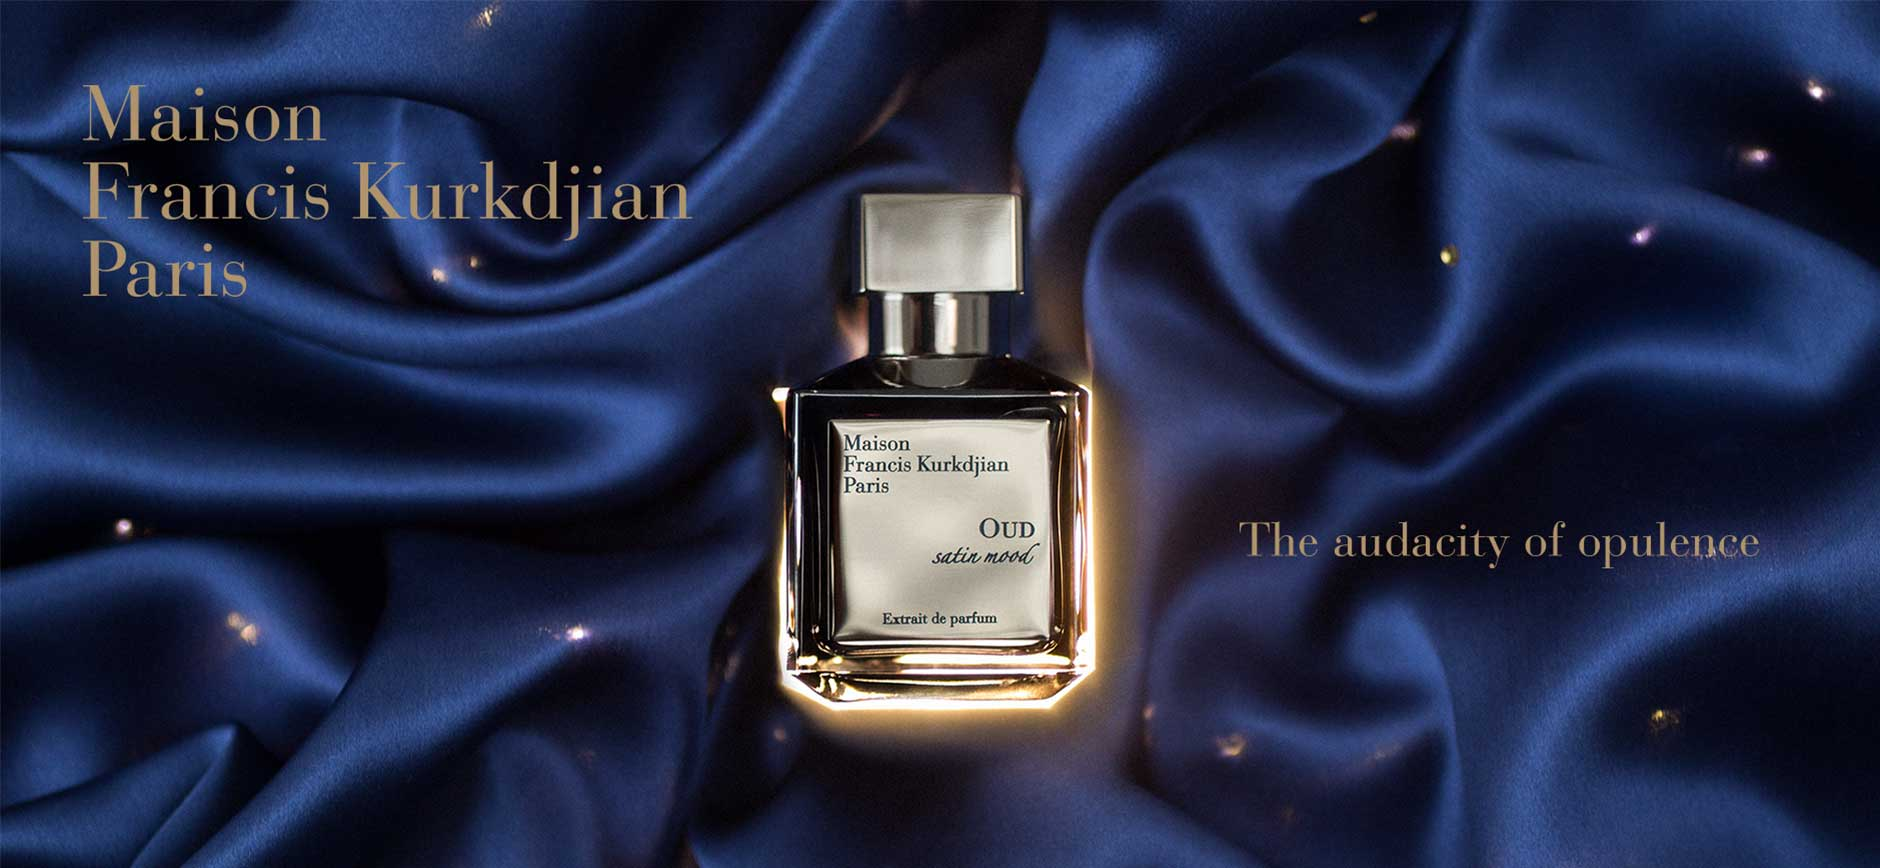 Maison Francis Kurkdjian Paris: The audacity of opulence